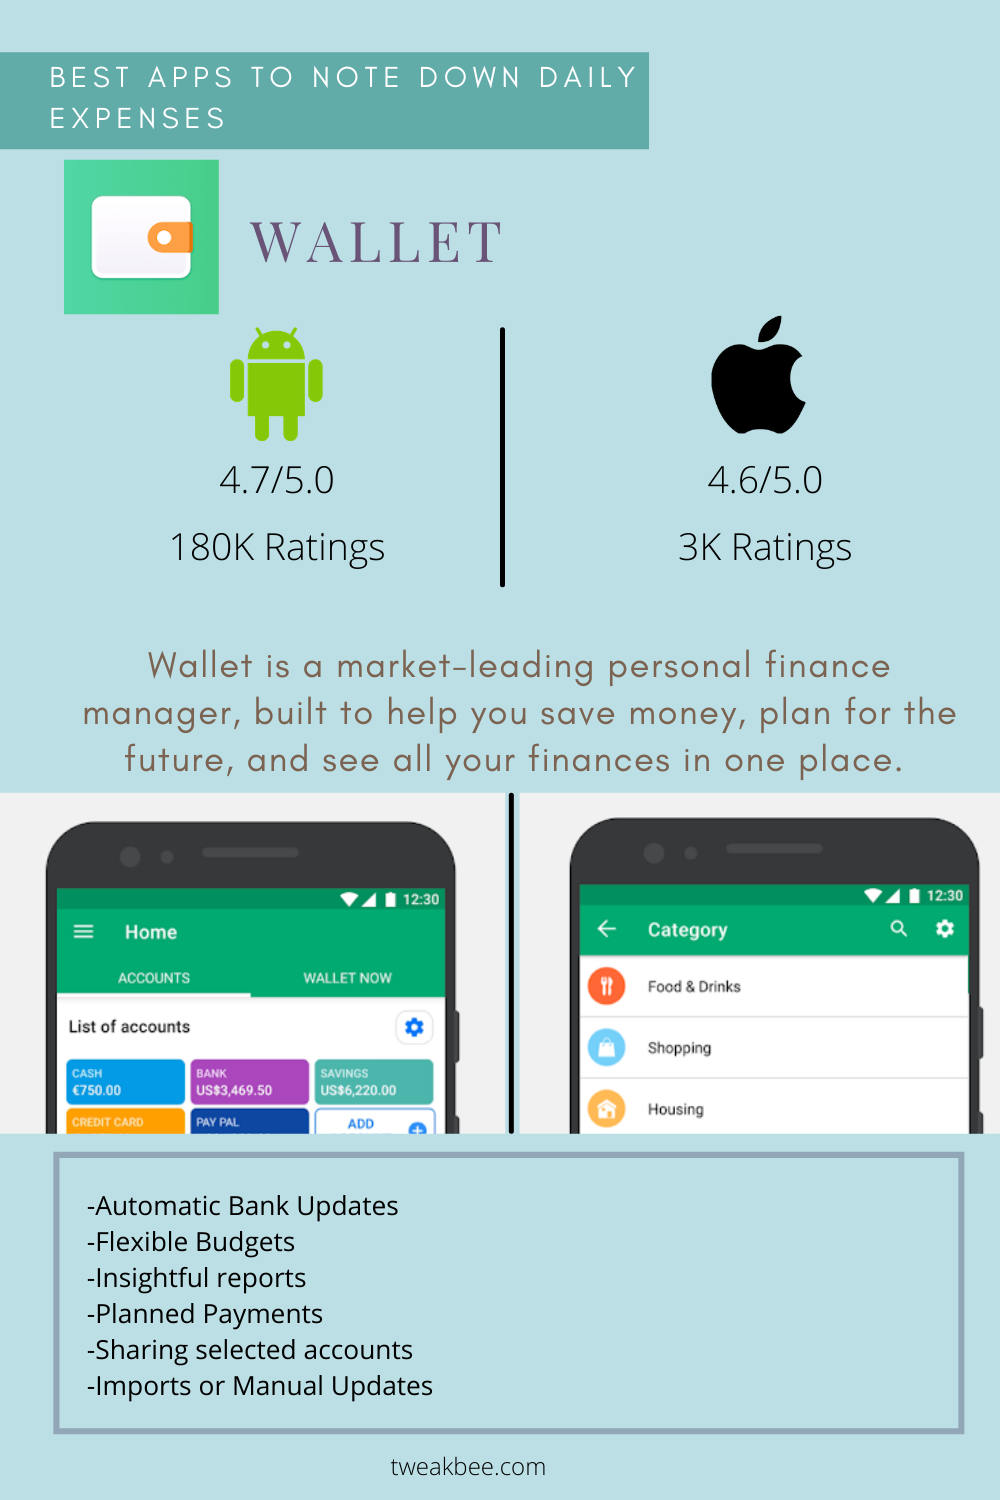 Best Apps to Note Down Daily Expenses